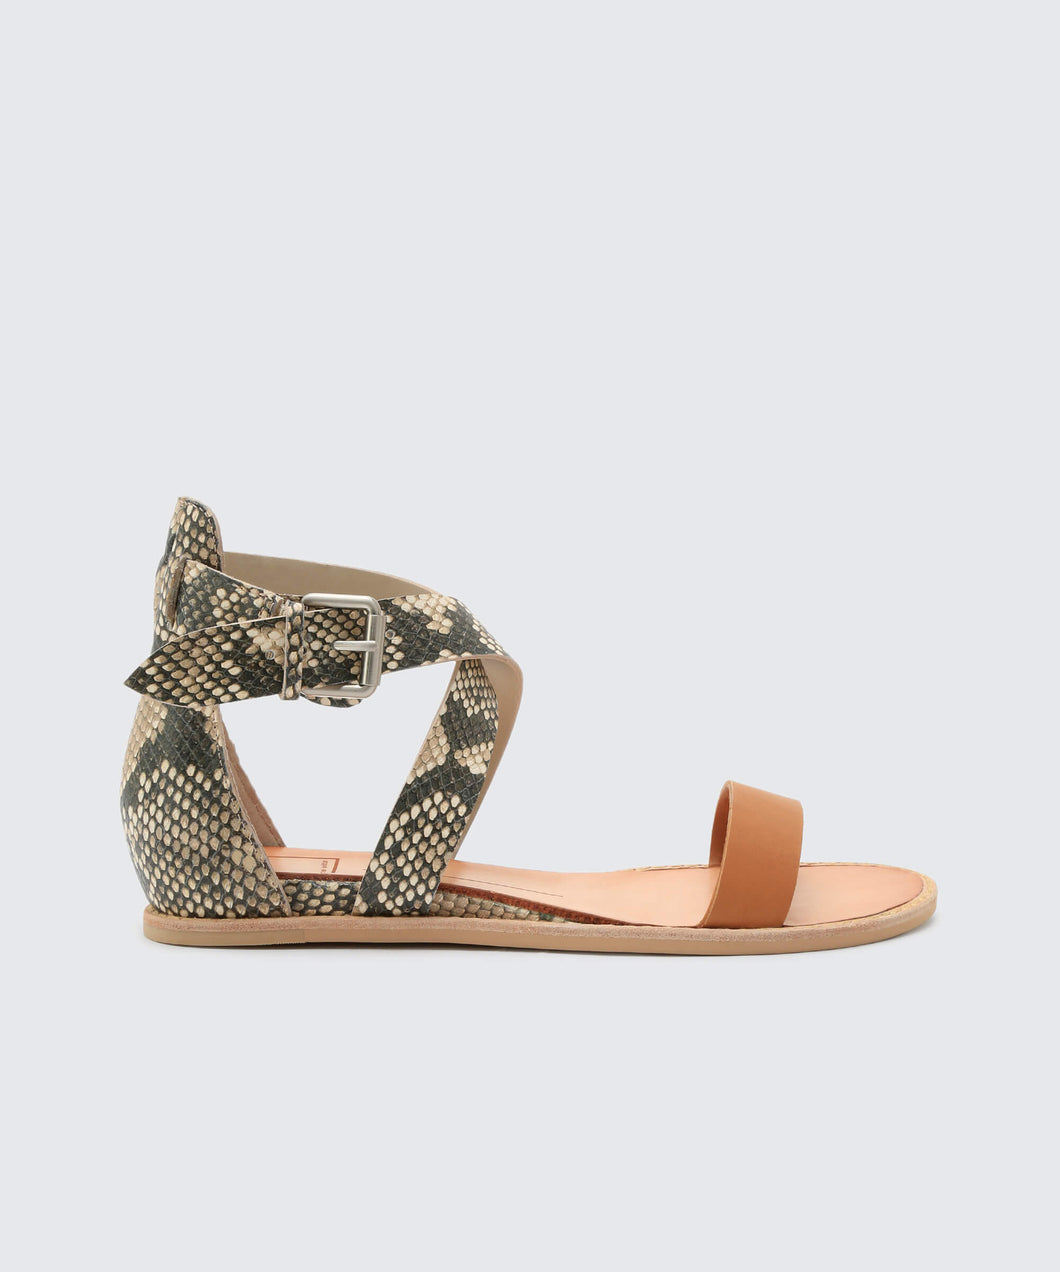 NOLEN SANDALS IN CARAMEL -   Dolce Vita